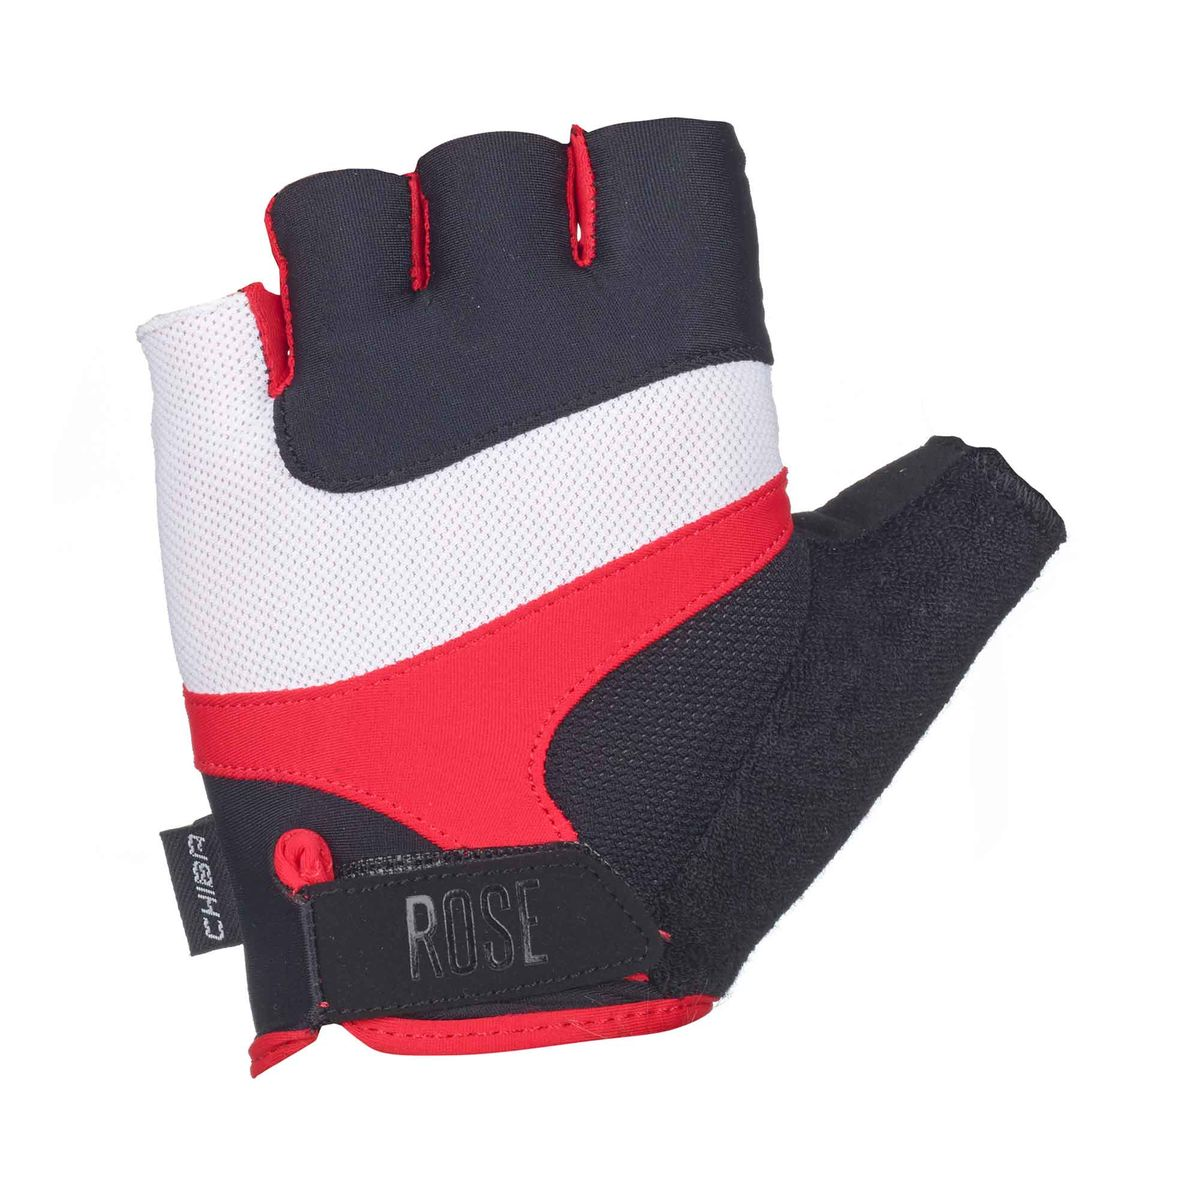 ROSE RSH GEL 03 gloves | Handsker